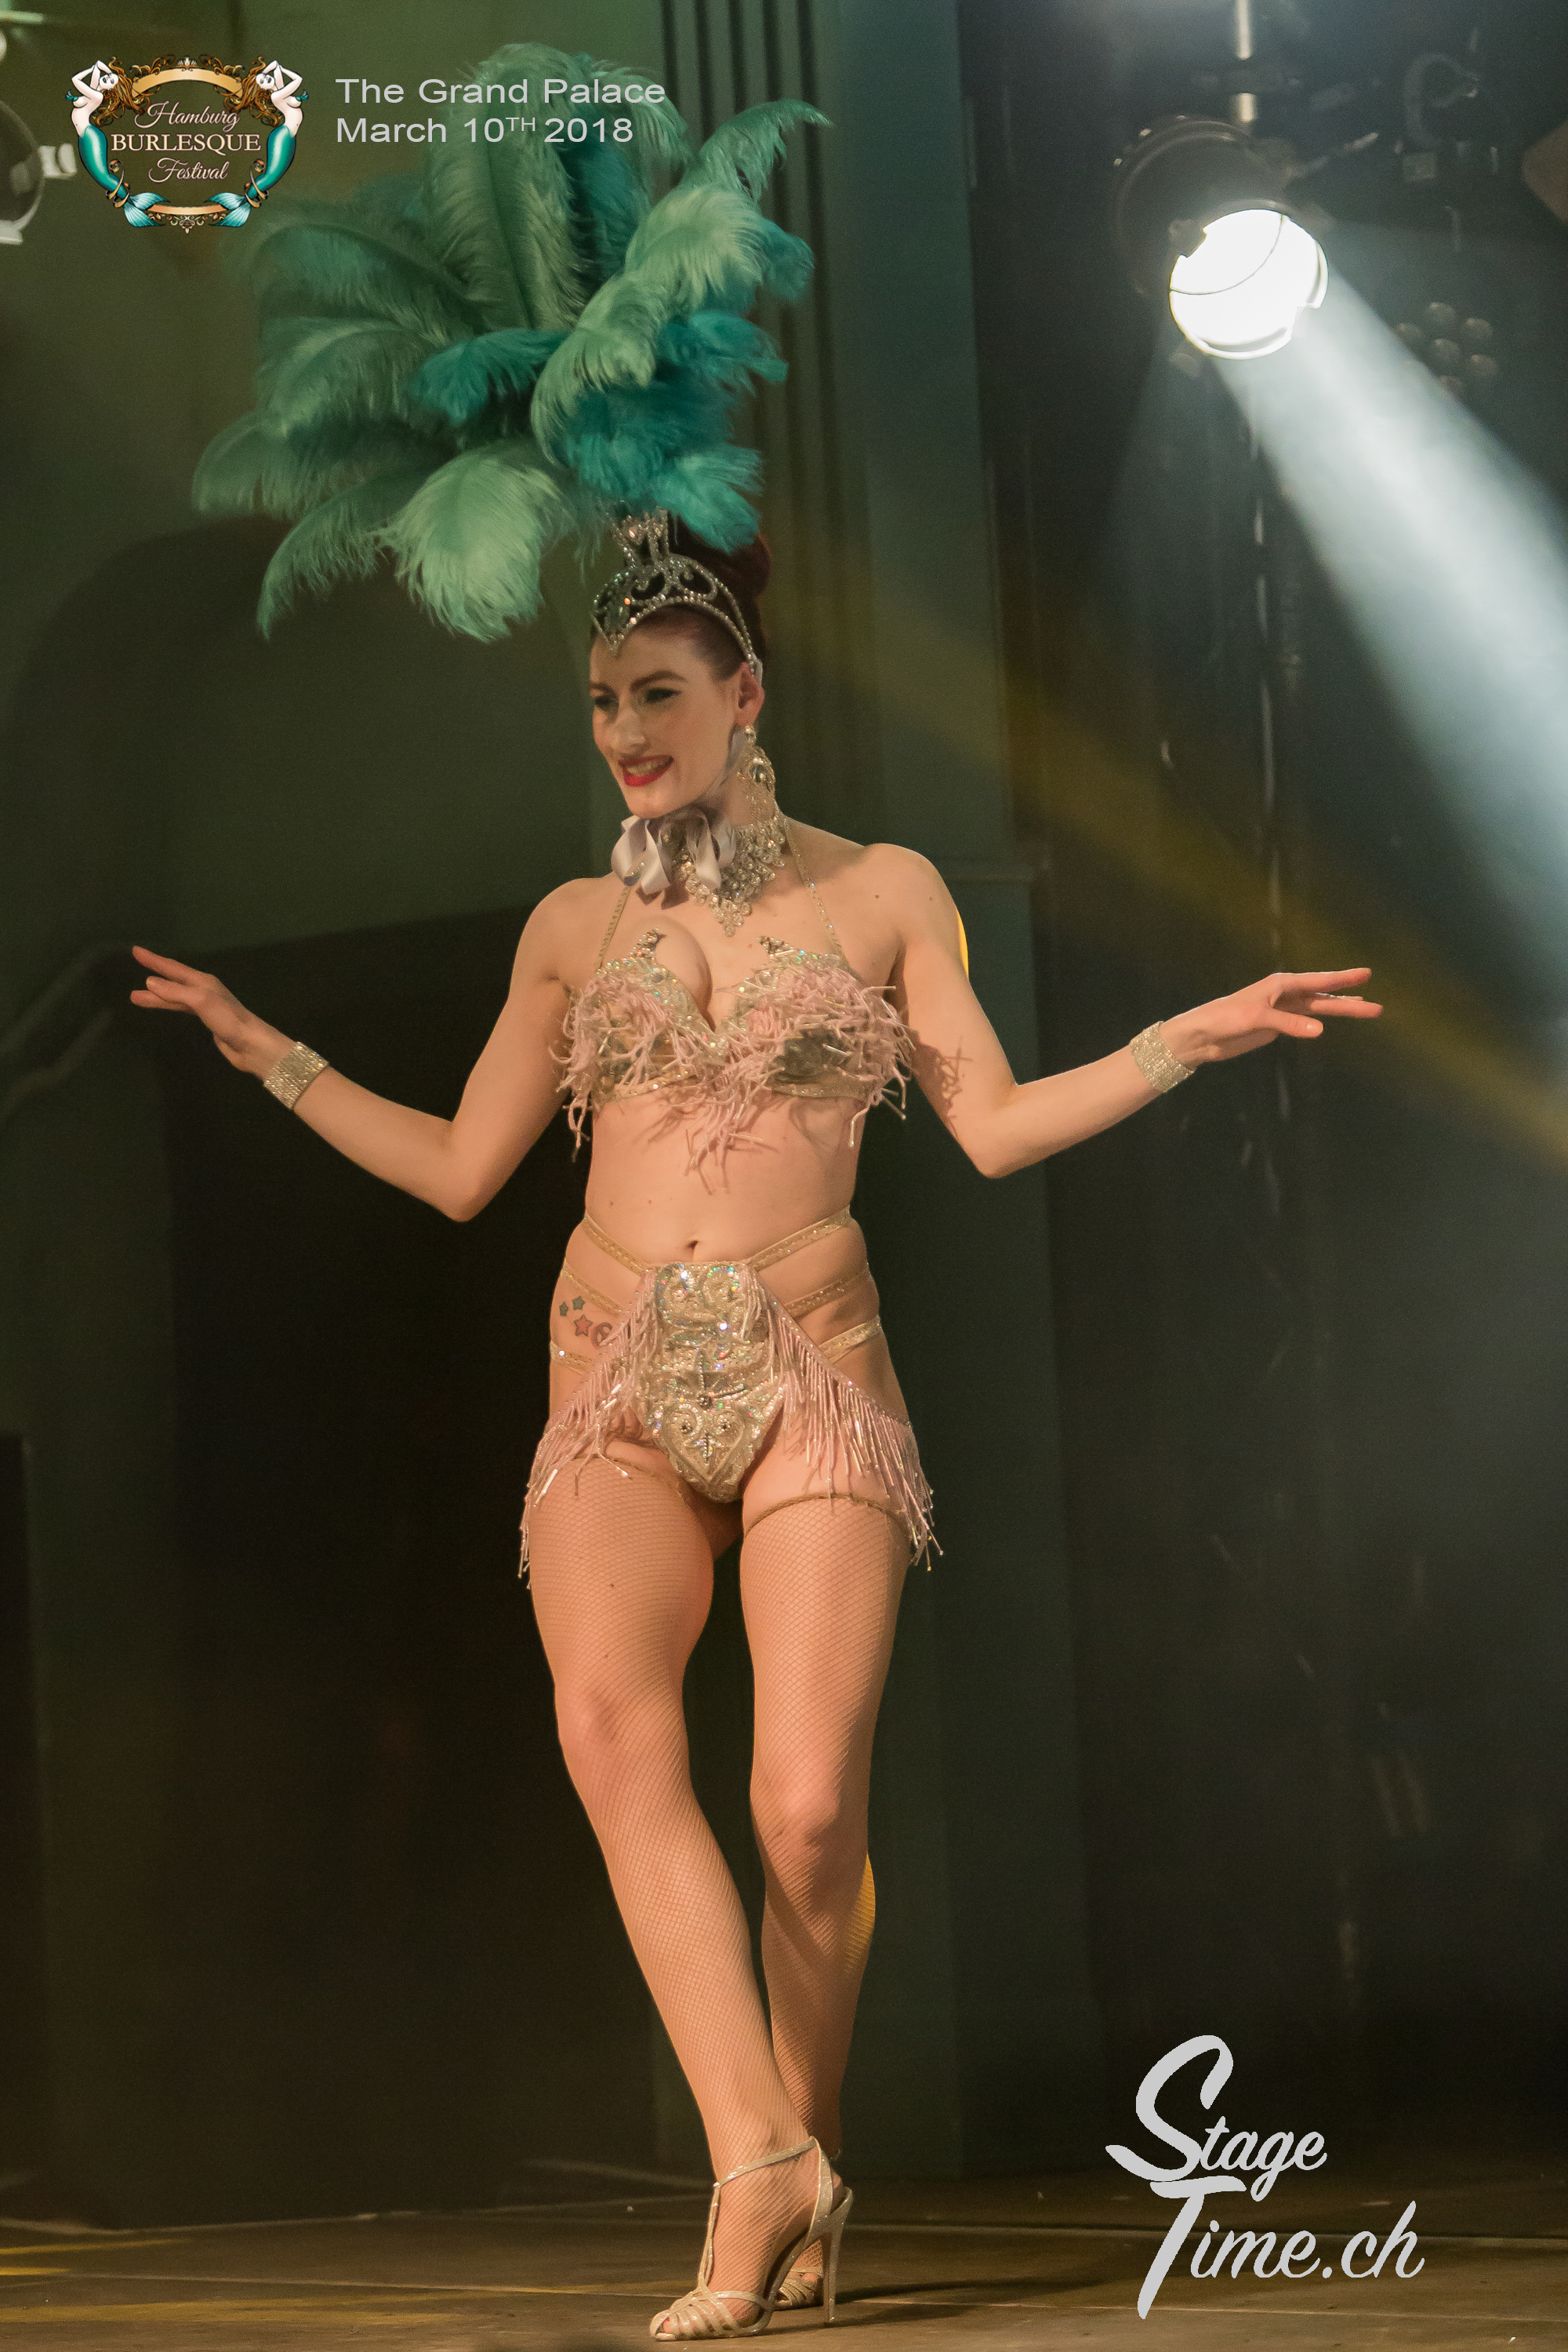 Hamburg_Burlesque_Festival_The_Grand_Palace__📷_Christoph_Gurtner_I_stagetime.ch-49